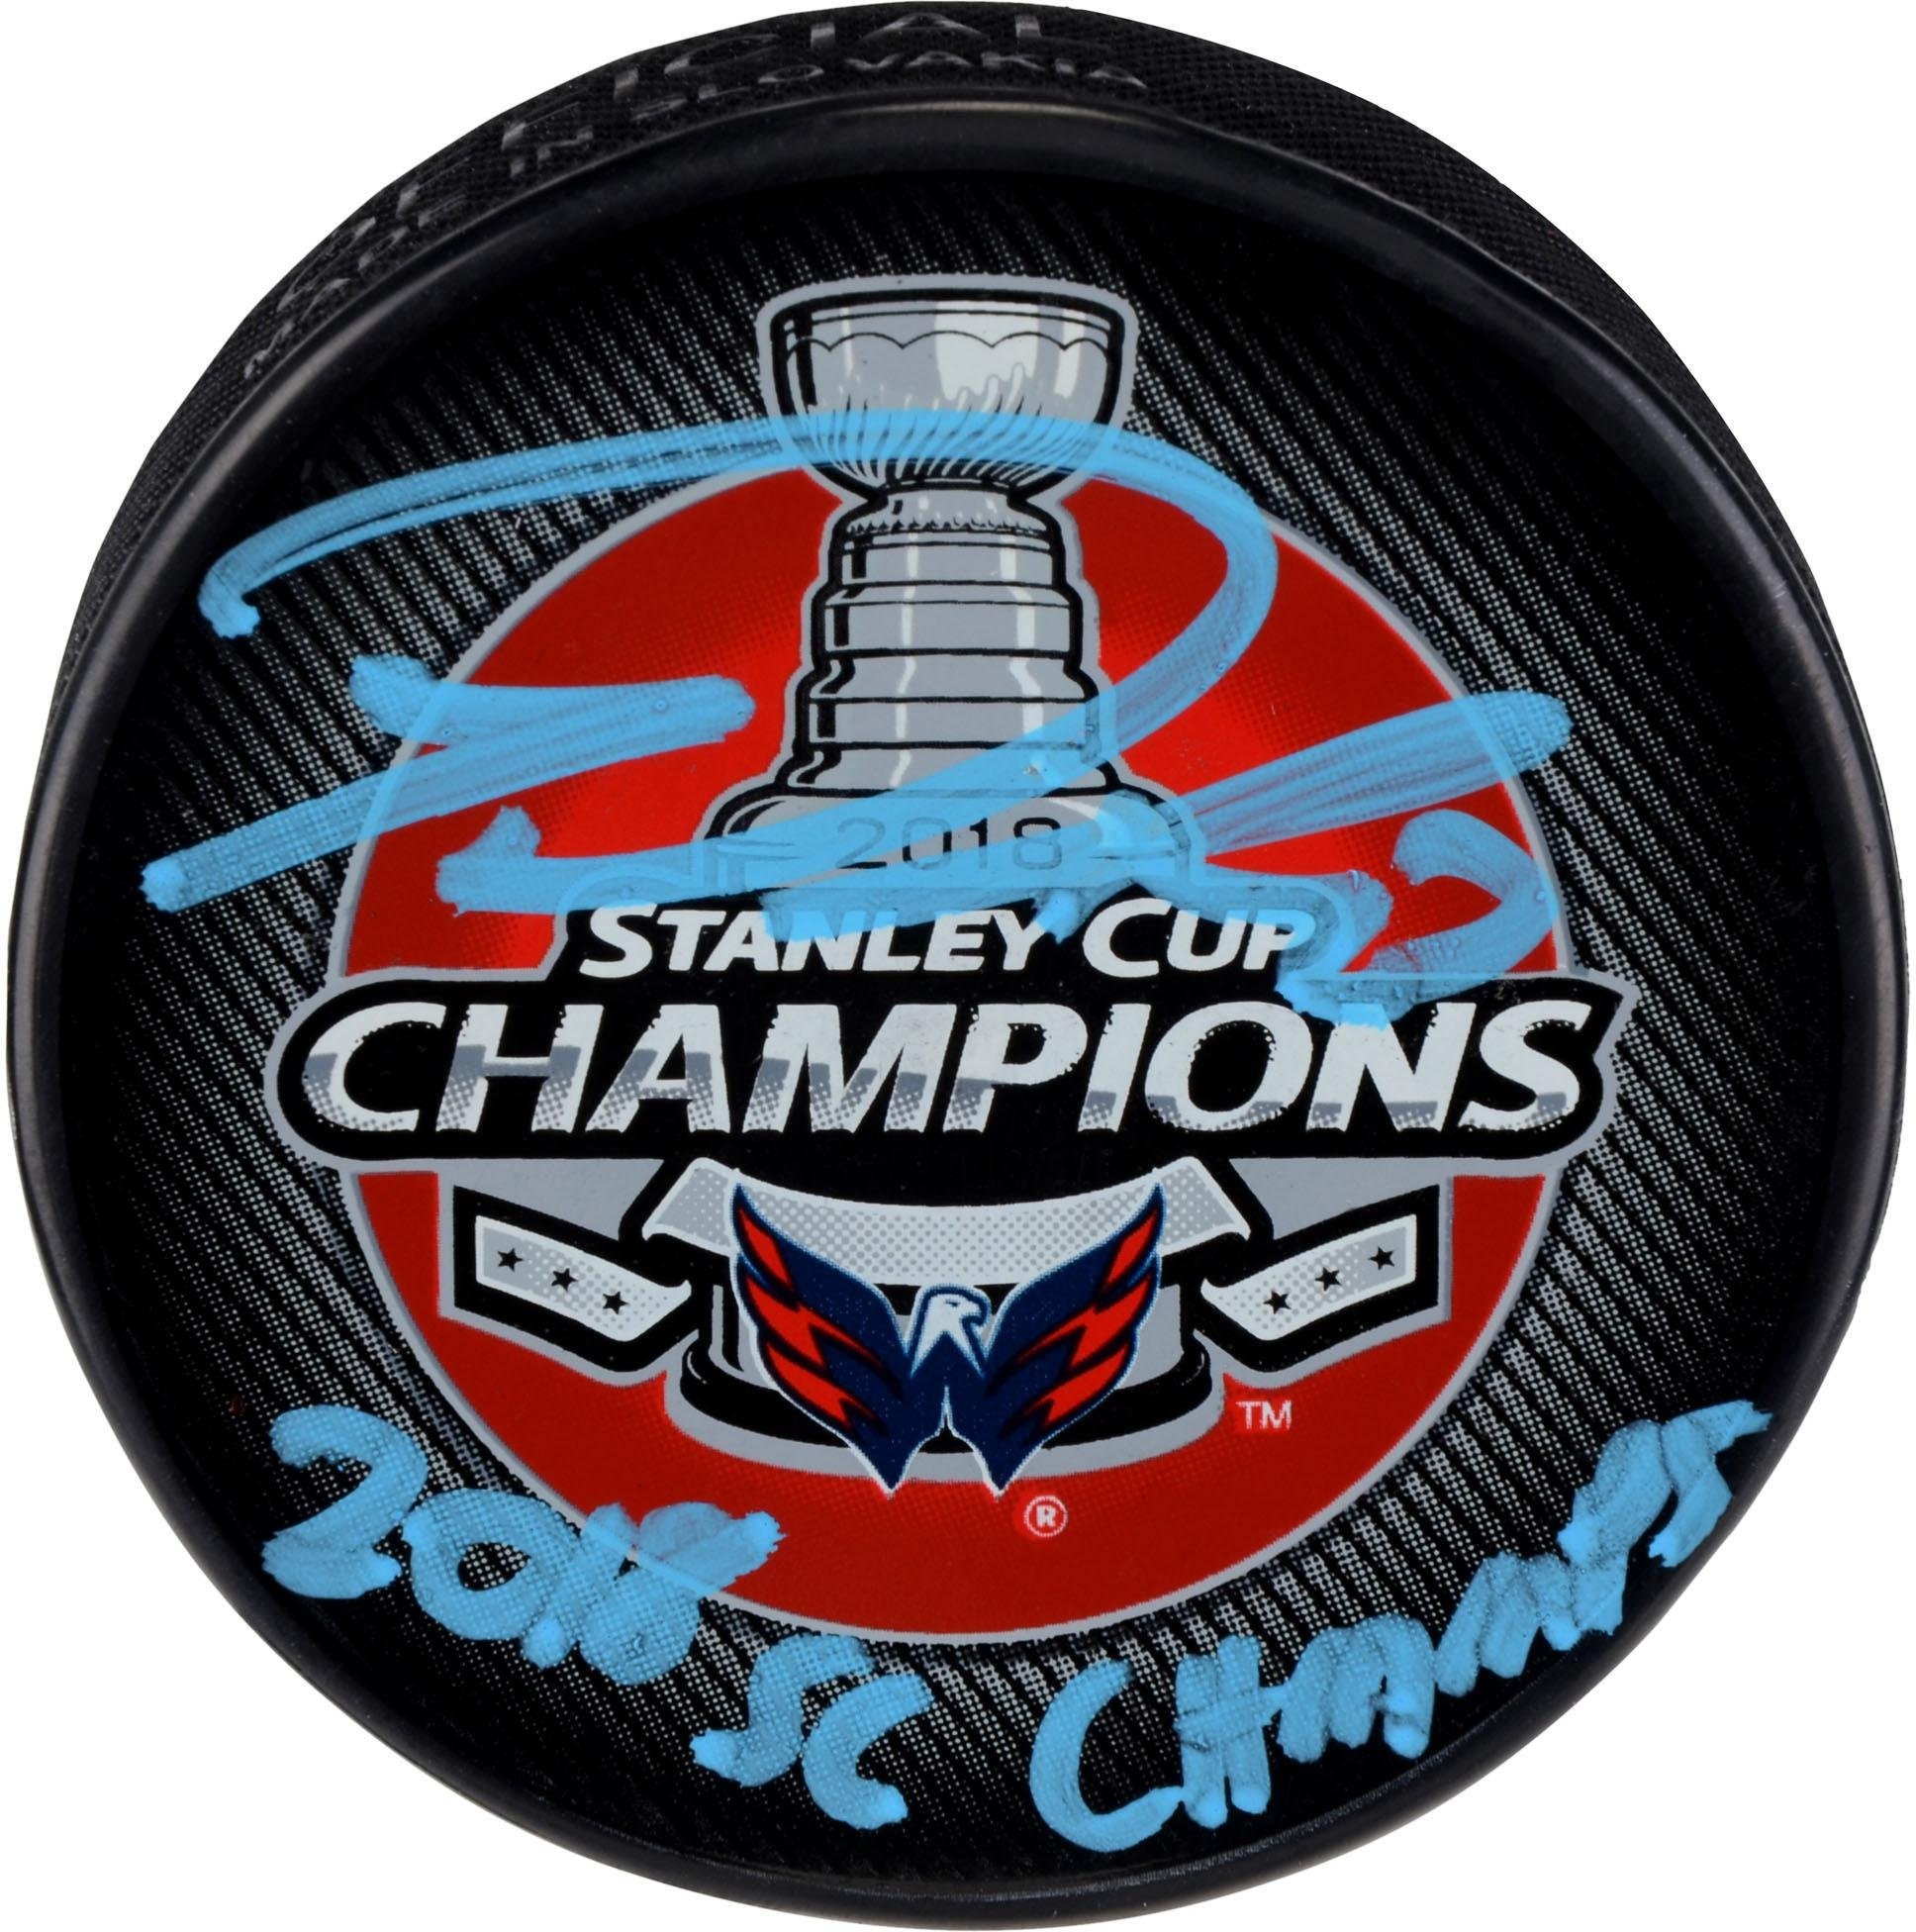 Tom Wilson Washington Capitals 2018 Stanley Cup Champions Autographed Stanley Cup Champions Logo Hockey Puck with 2018 SC Champs Inscription Fanatics Authentic Certified